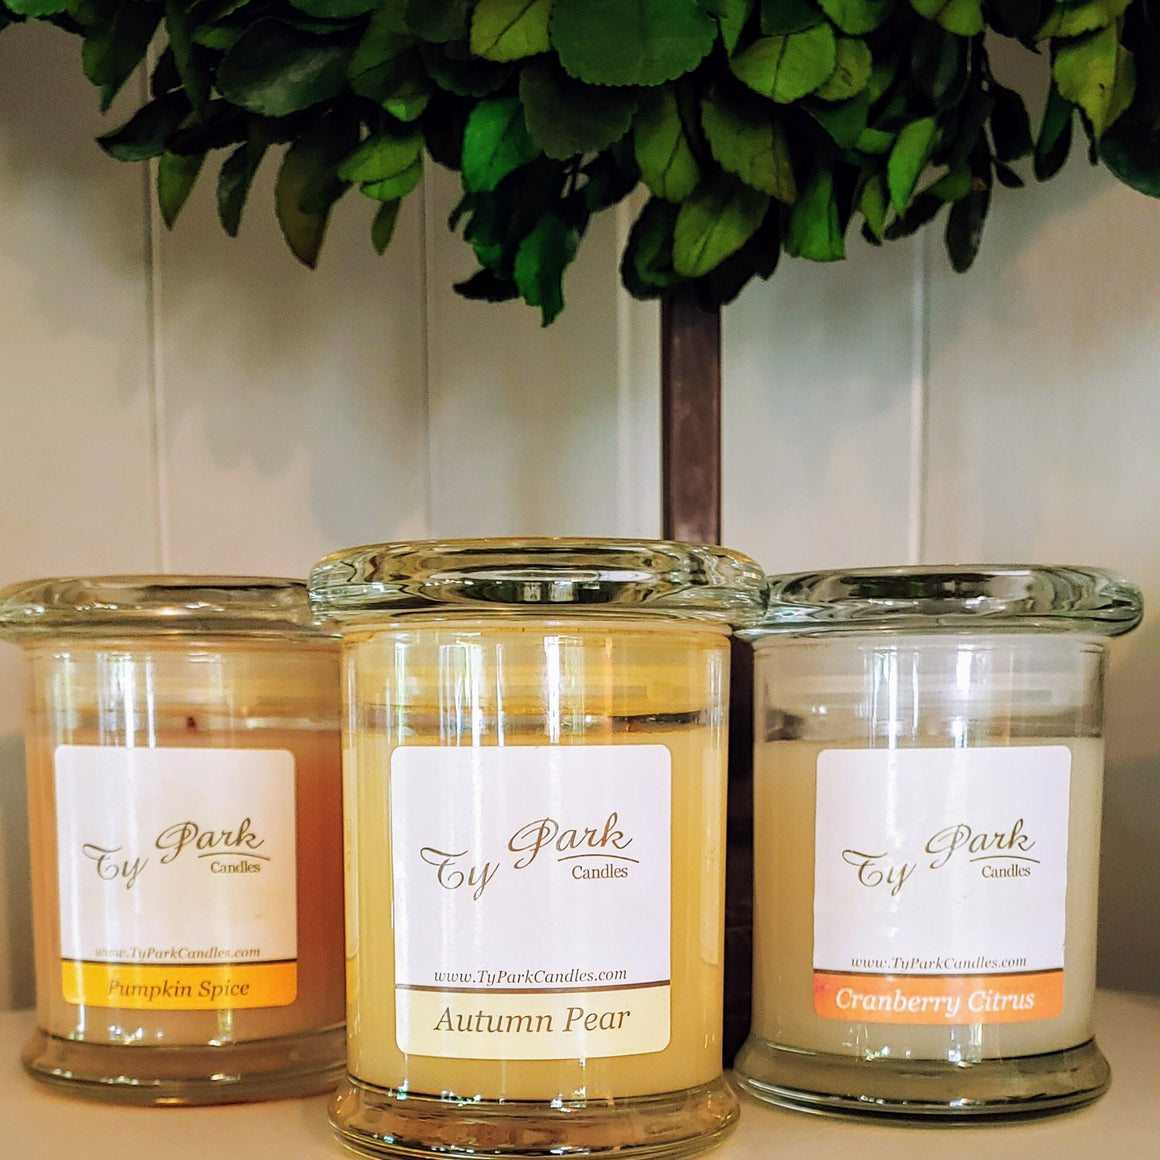 TY Park Candles